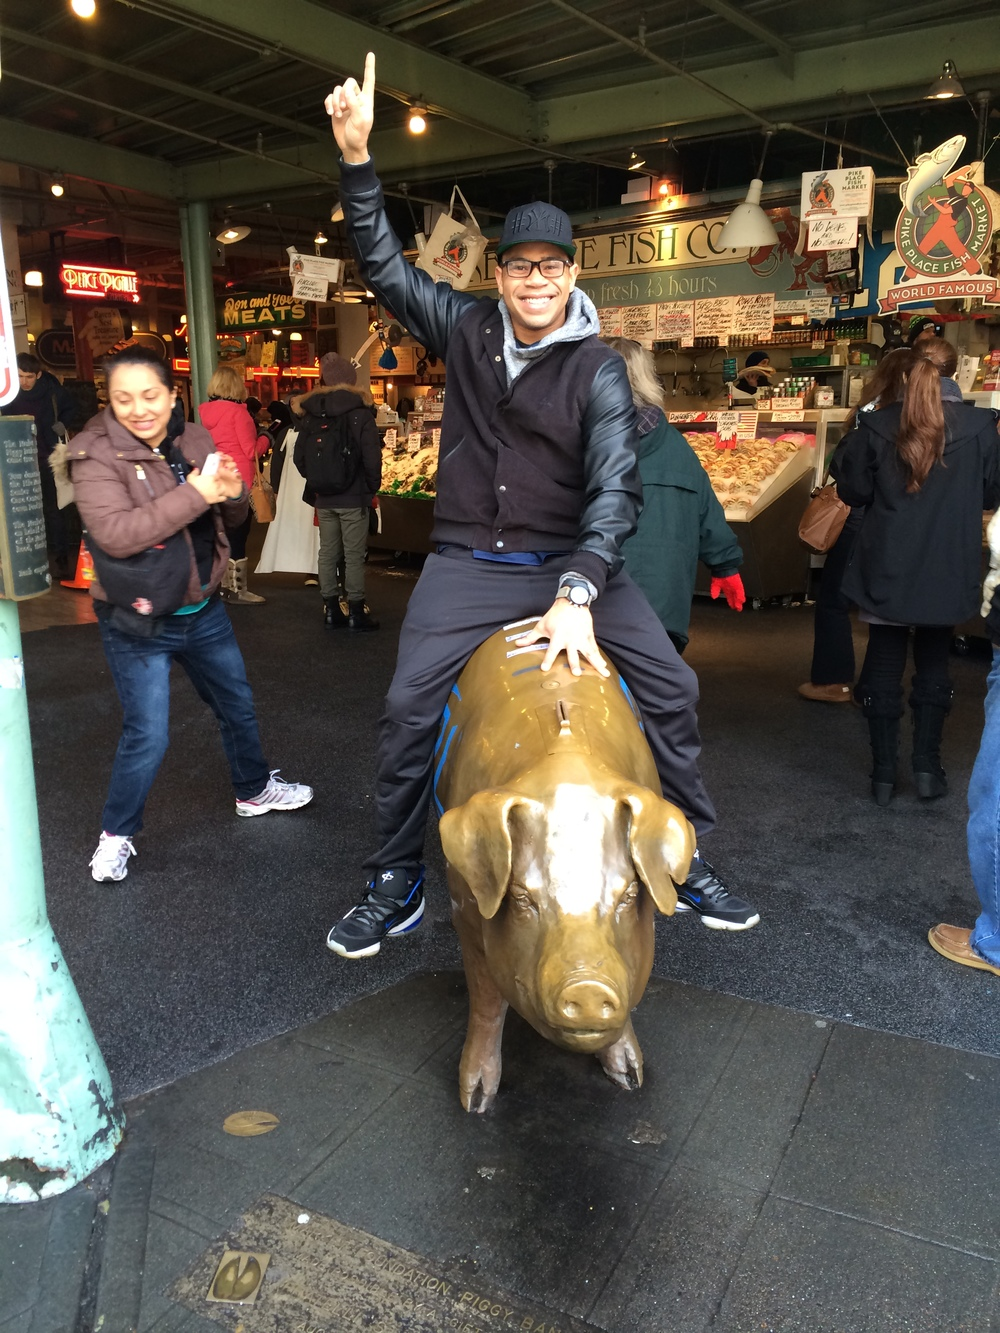 A Ride on the 12th Man pig inside the world famous Pike Place Fish Market